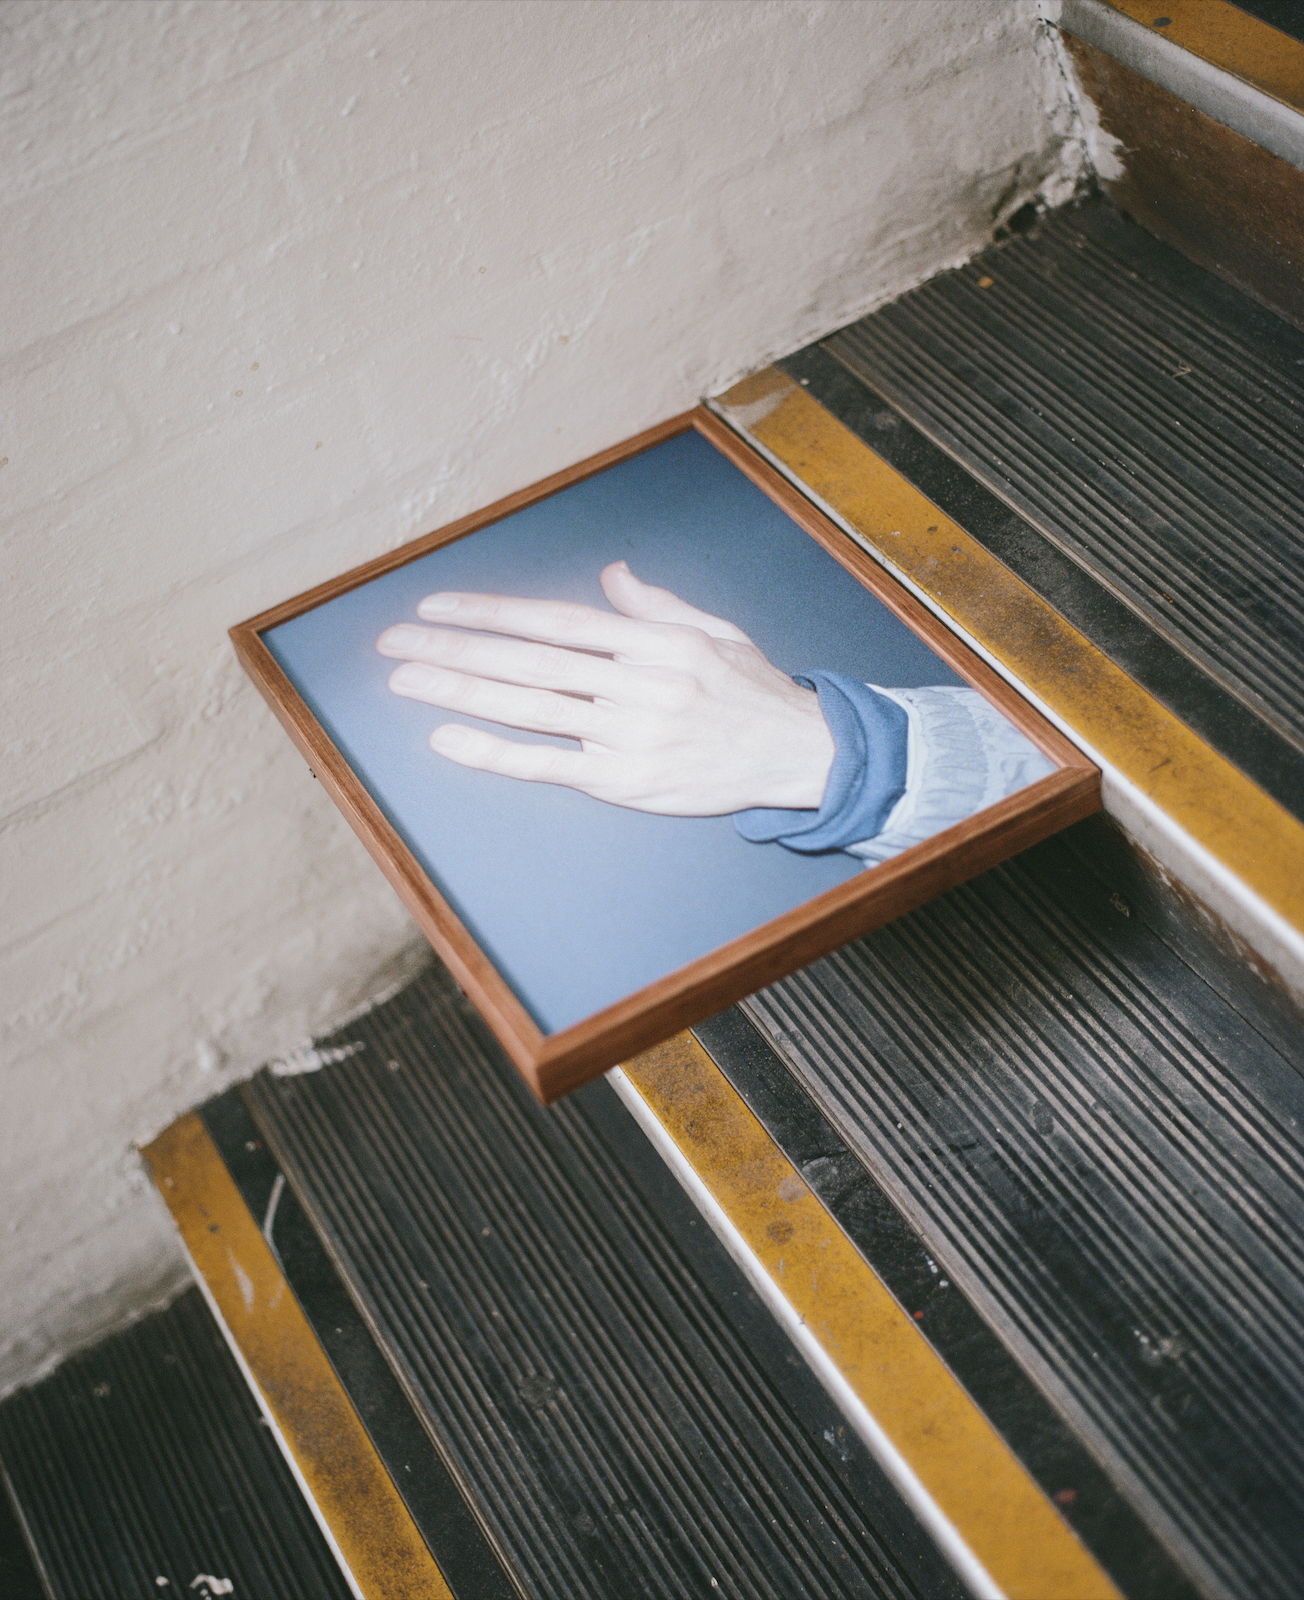 Soft , archival matte inkjet print mounted and framed within stained Tasmanian Oak, 31 x 40 cm, 2018.  Available to purchase at: https://timhardy.bigcartel.com.